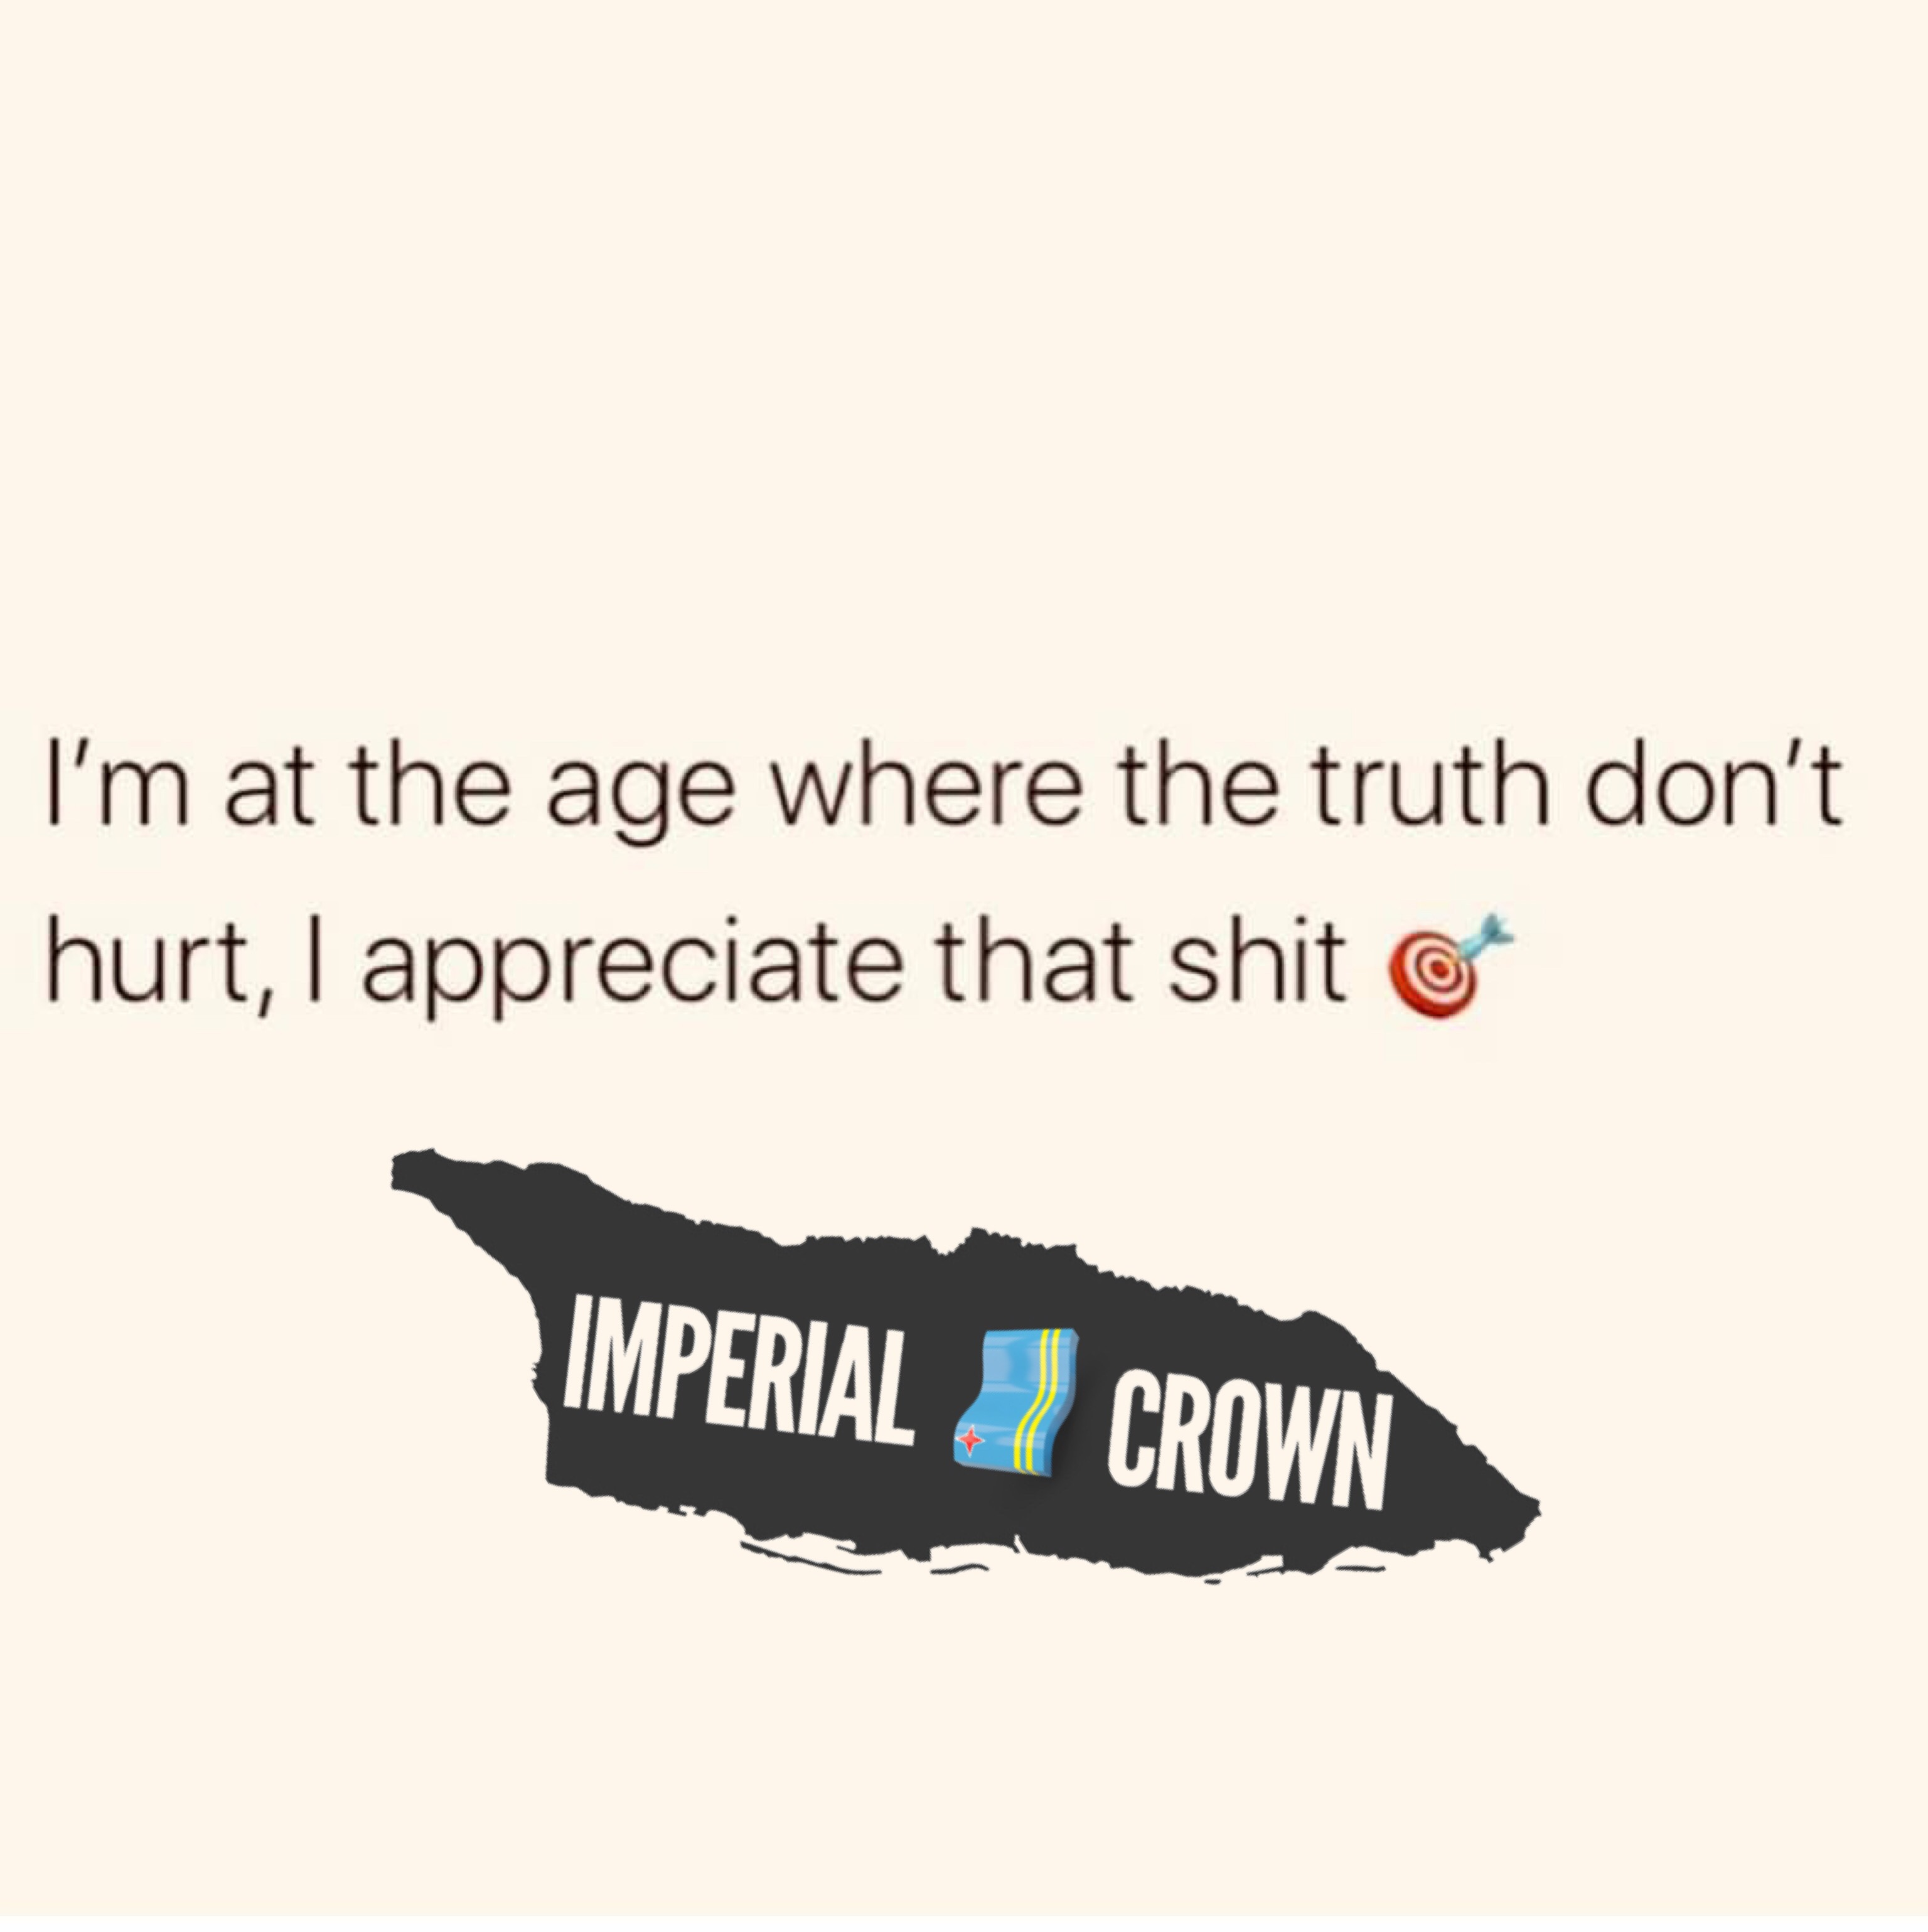 I'm at the age where the truth don't hurt I appreciate that shit